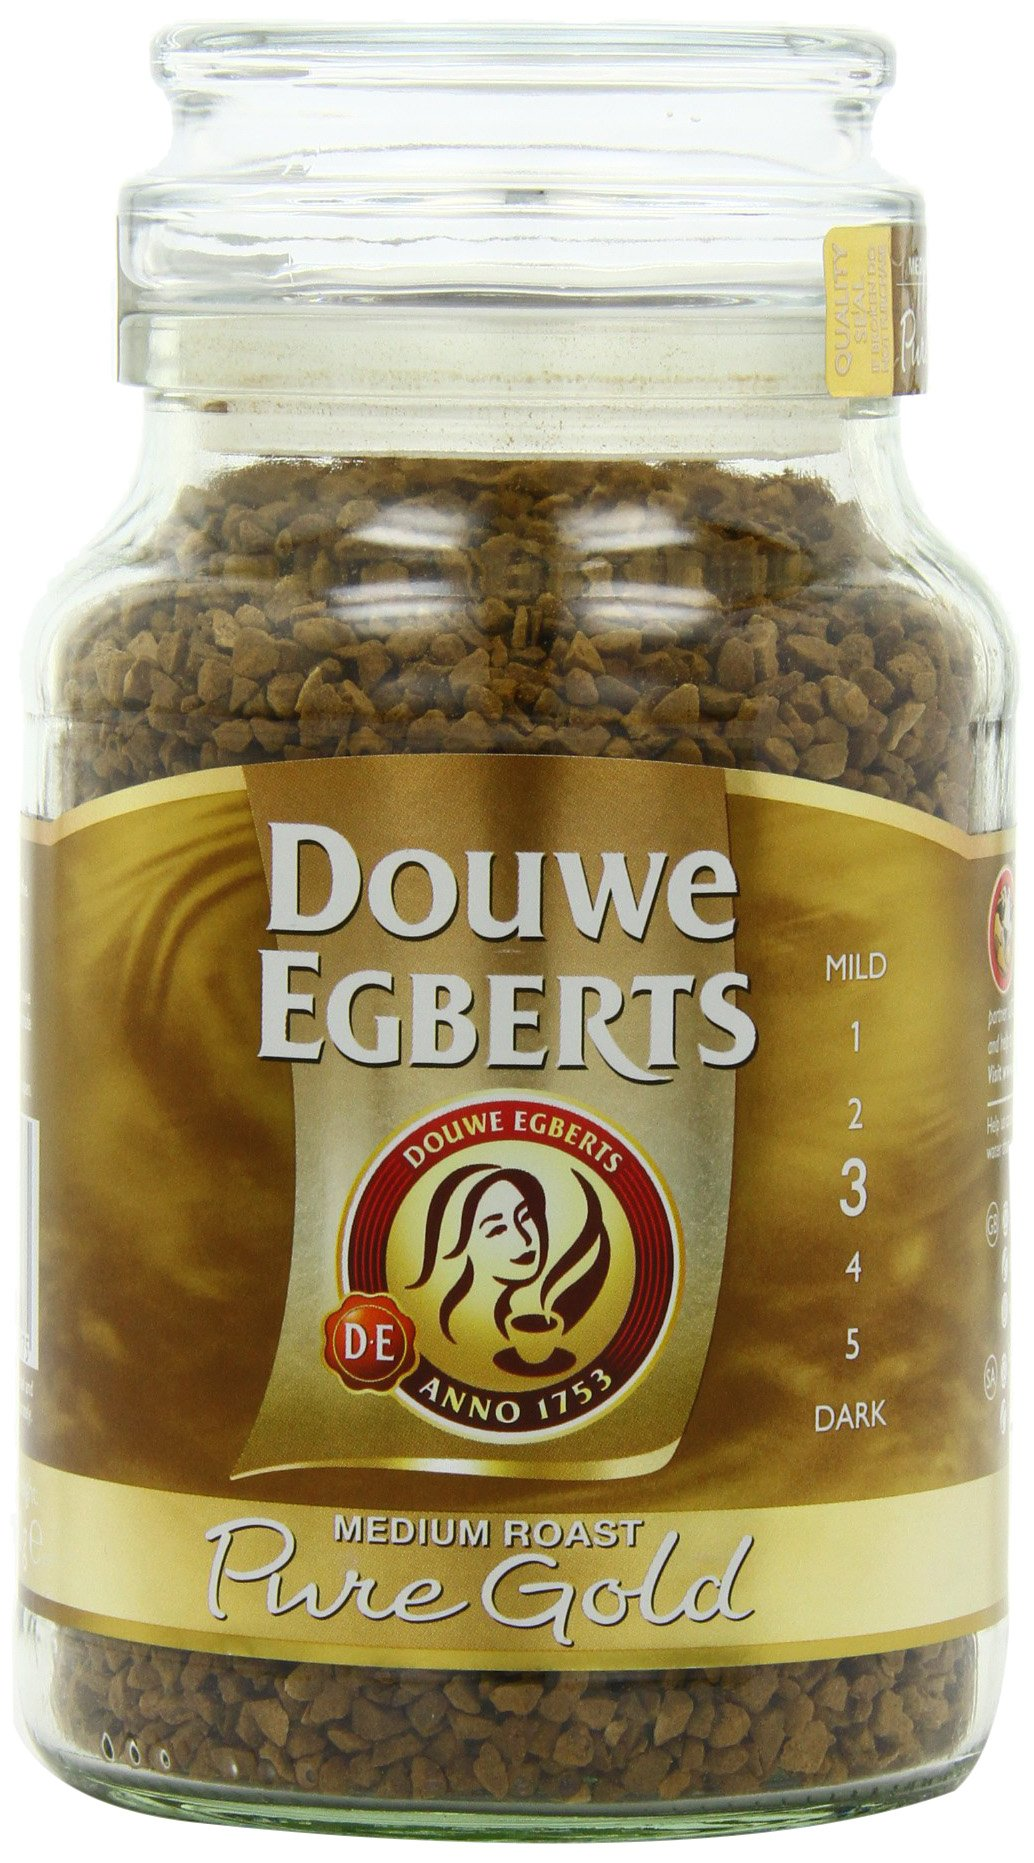 Douwe Egberts Pure Gold Instant Coffee, Medium Roast, 7.05-Ounce, 200g (Packaging May Vary) by Douwe Egberts